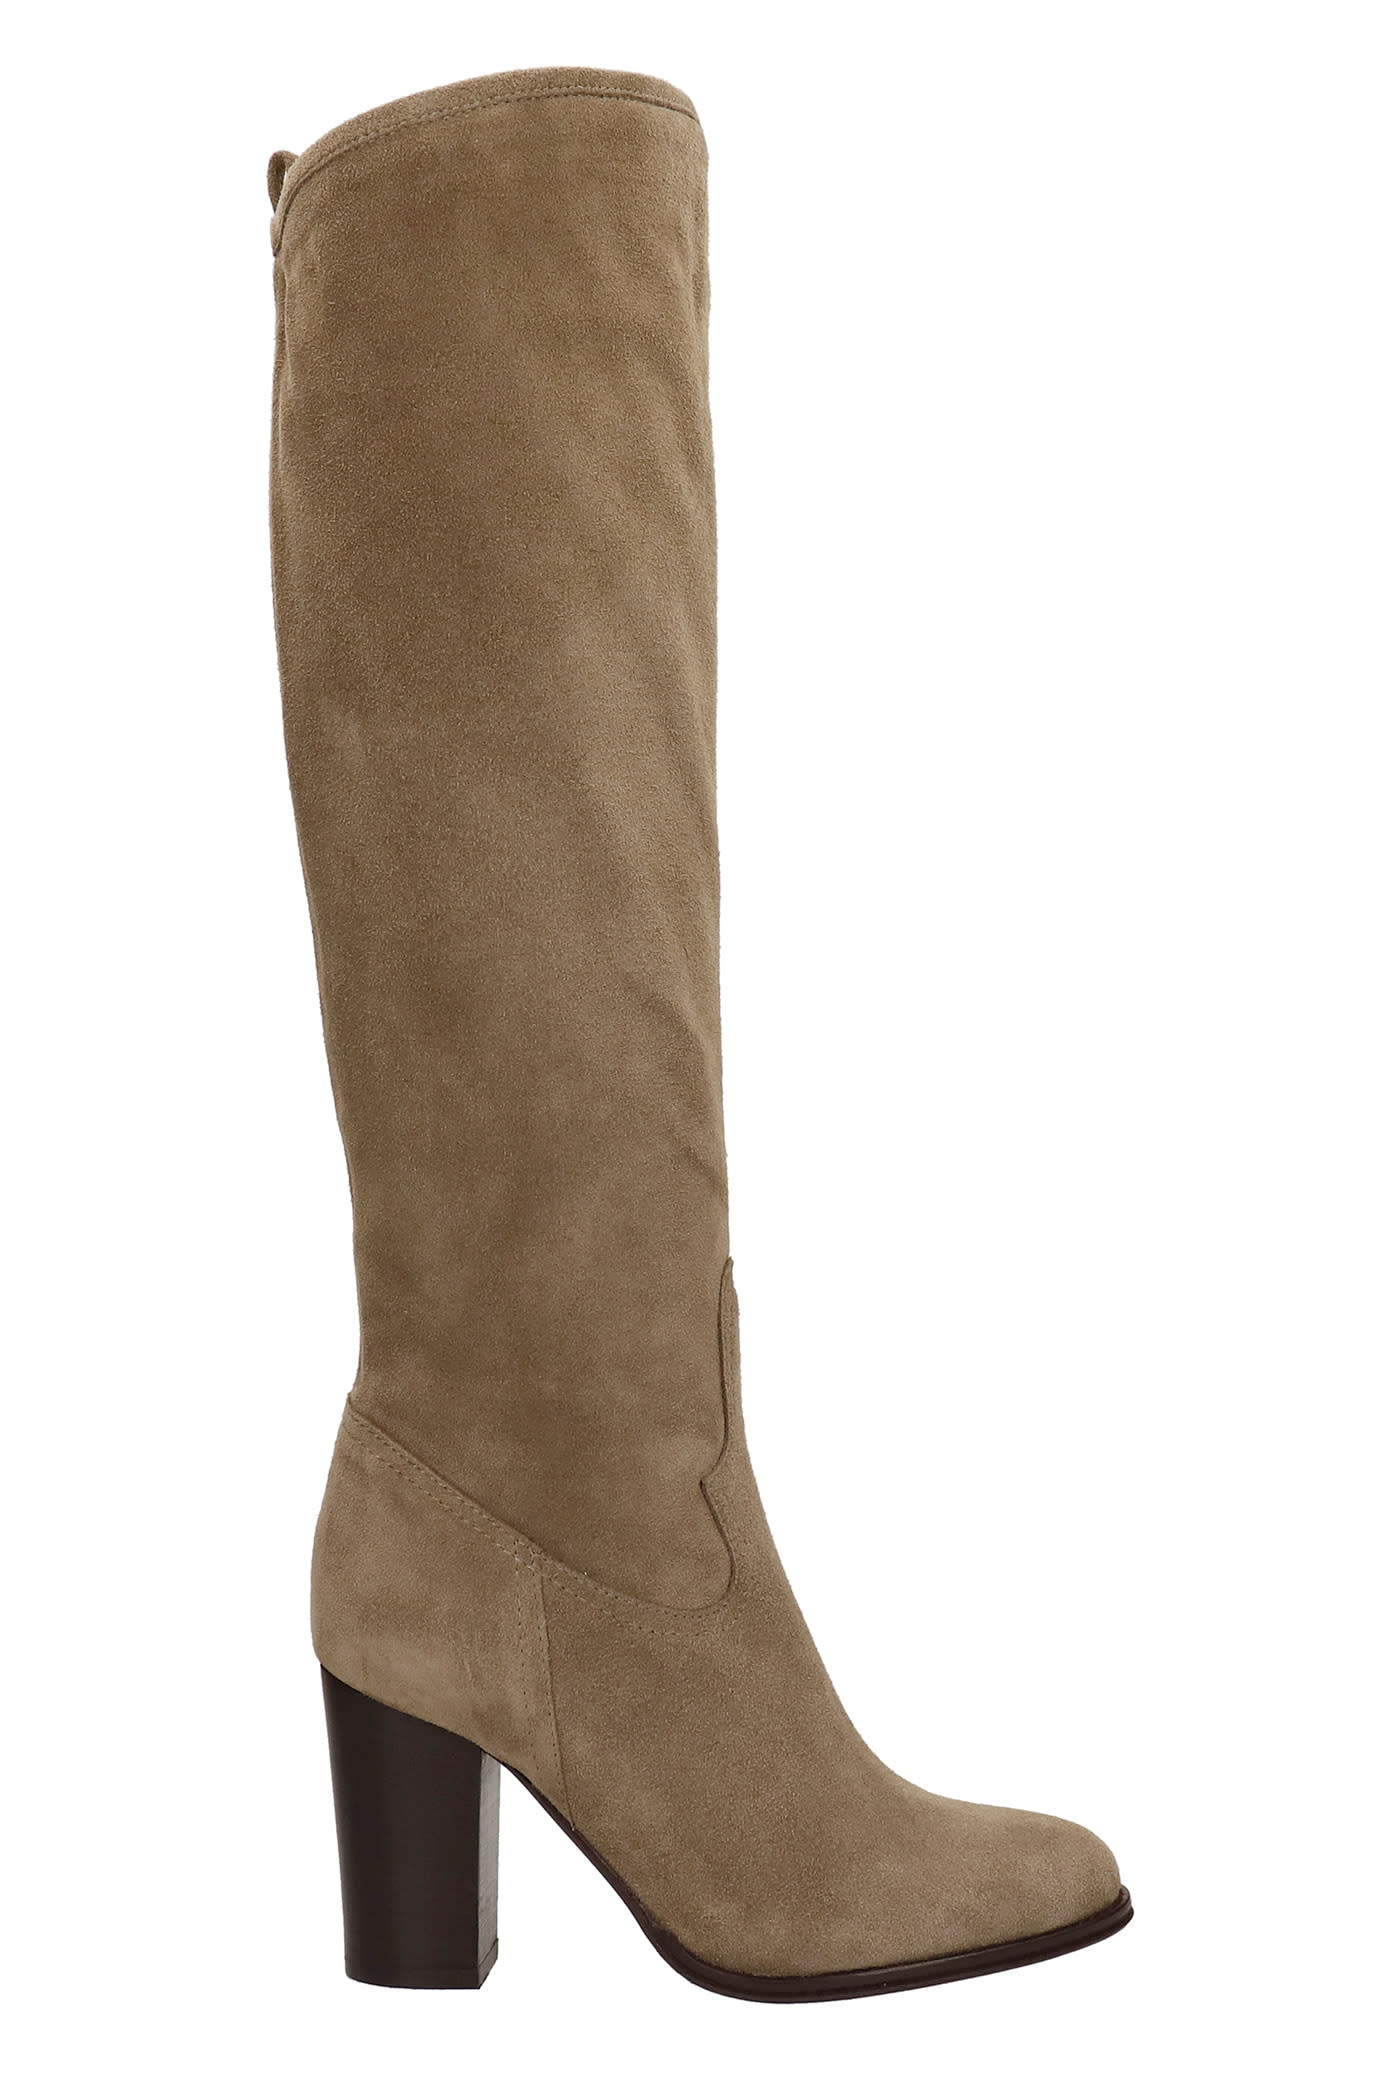 High Heels Boots In Taupe Leather